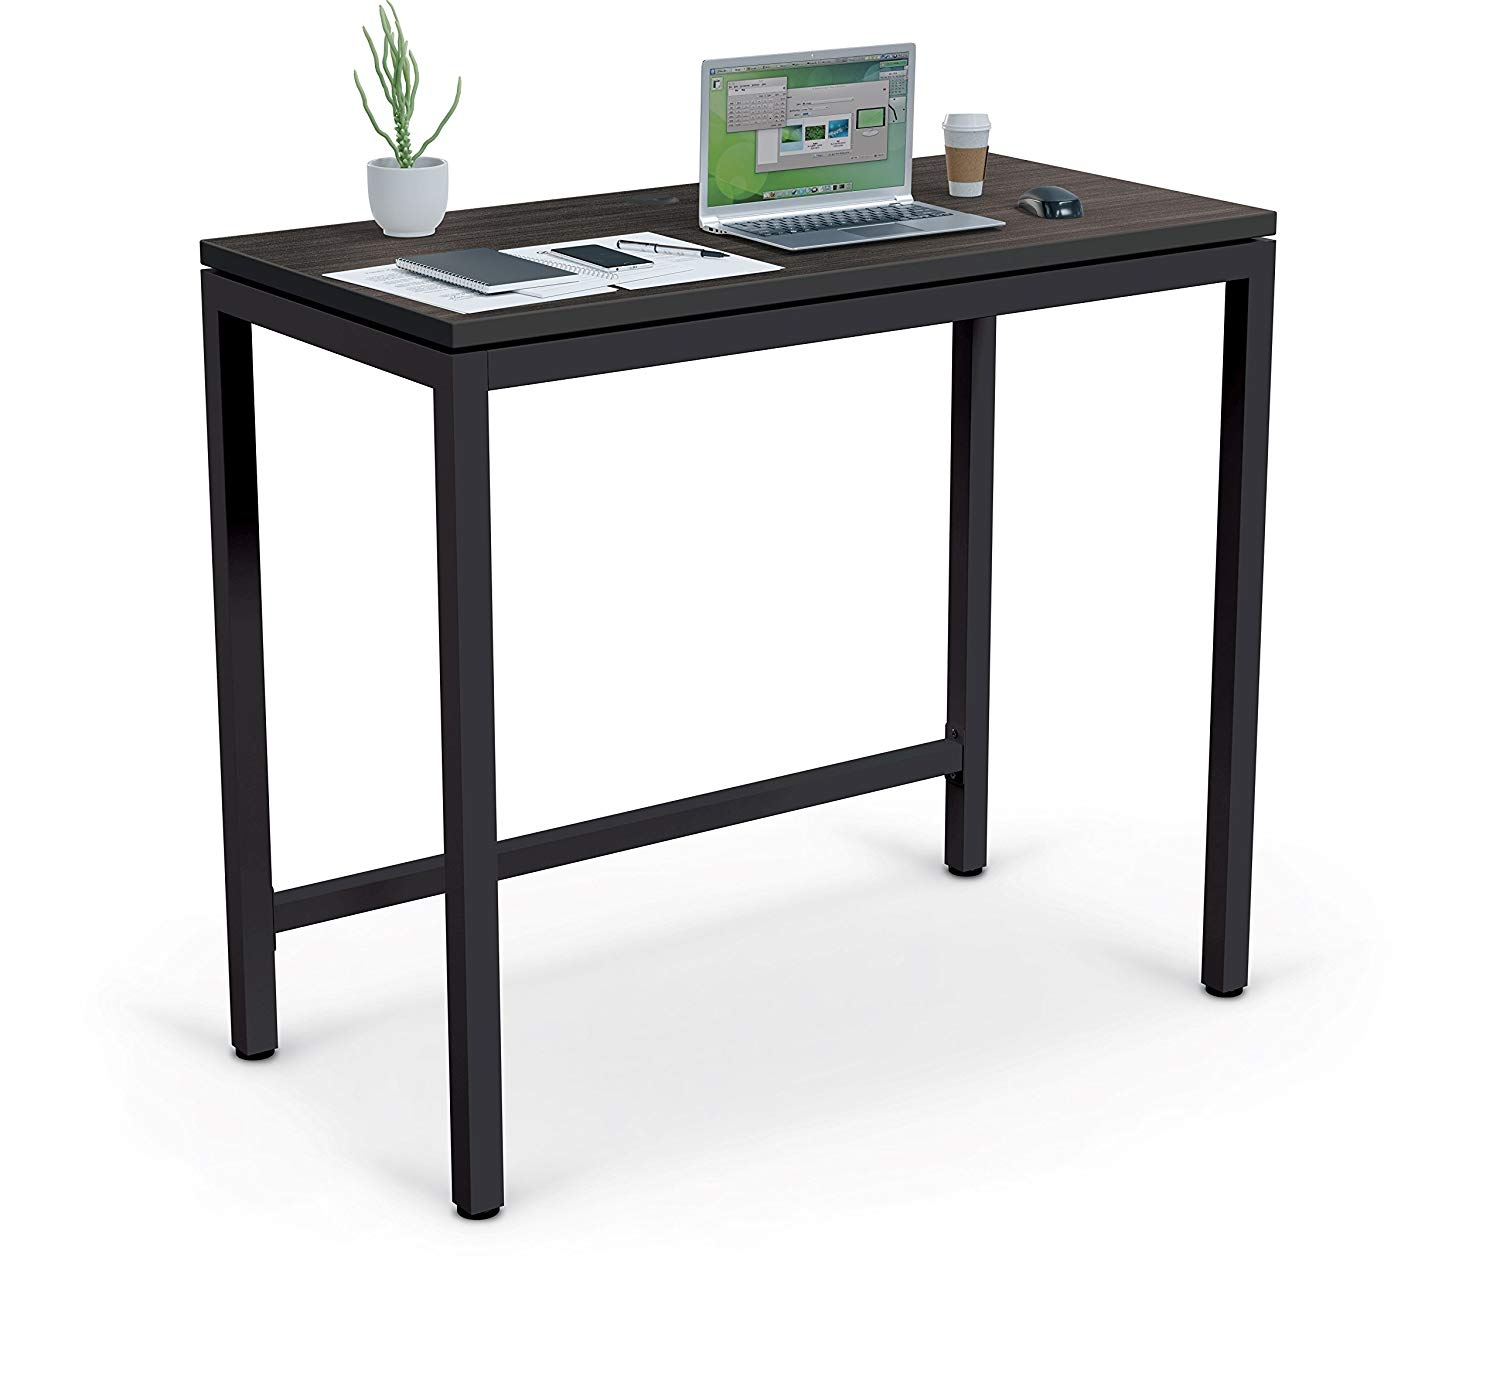 MooreCo Essentials Stand Up Table Desk, Asian Night Top/Black Edgeband + Black Frame (84314)